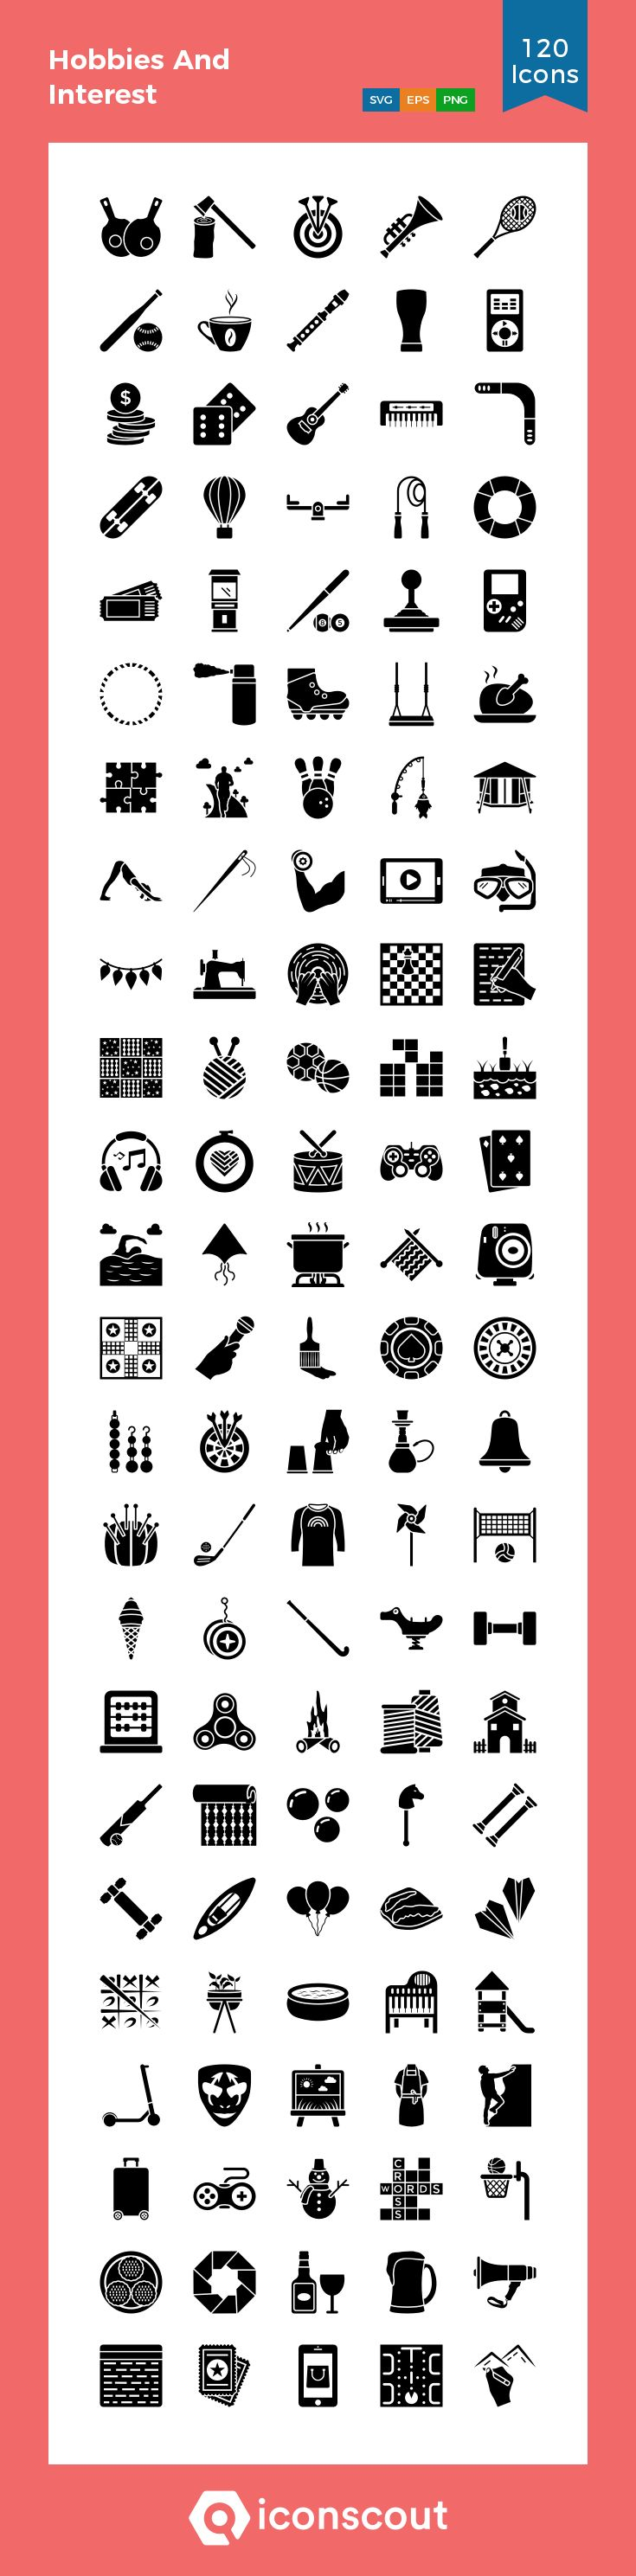 Download Hobbies And Interest Icon pack Available in SVG